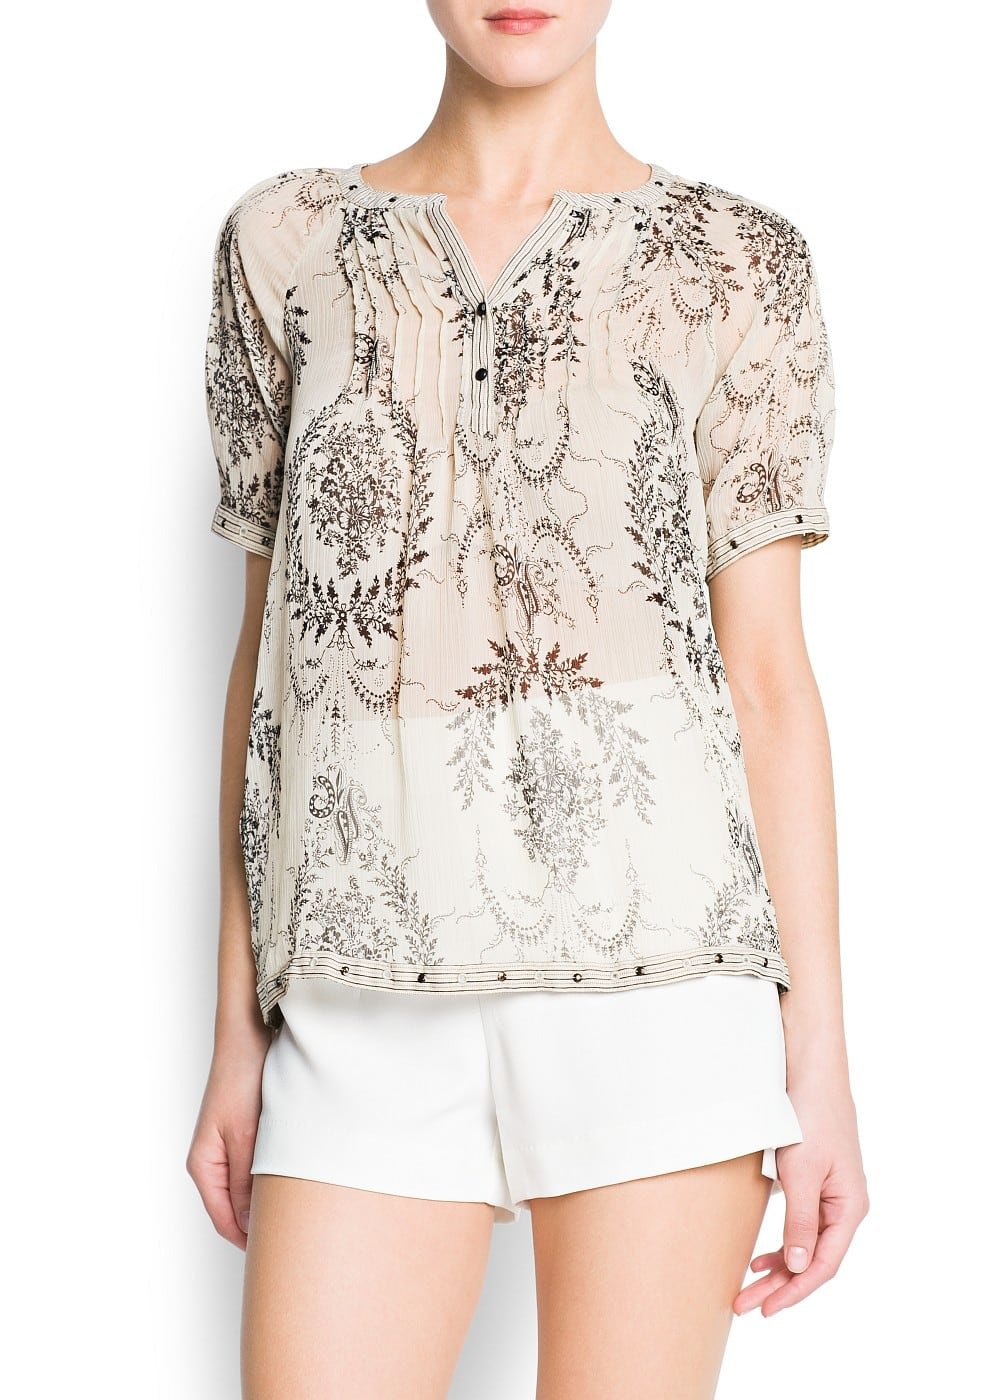 Pleated chiffon printed blouse